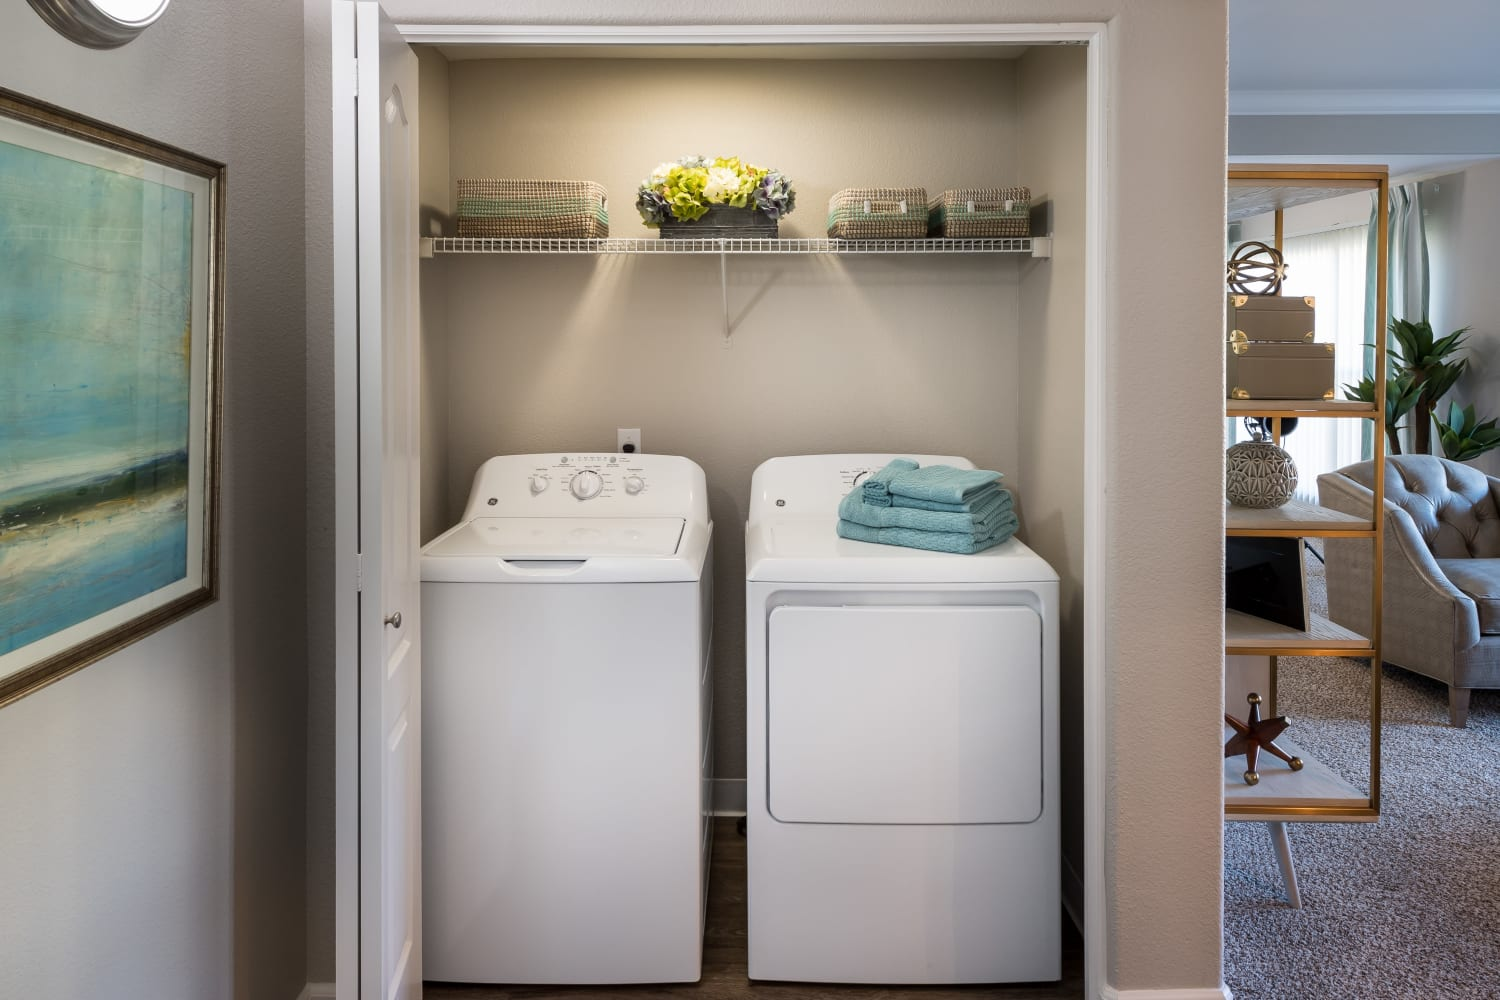 Enjoy the convenience of a washer and dryer in unit at The Carlyle in Santa Clara, California